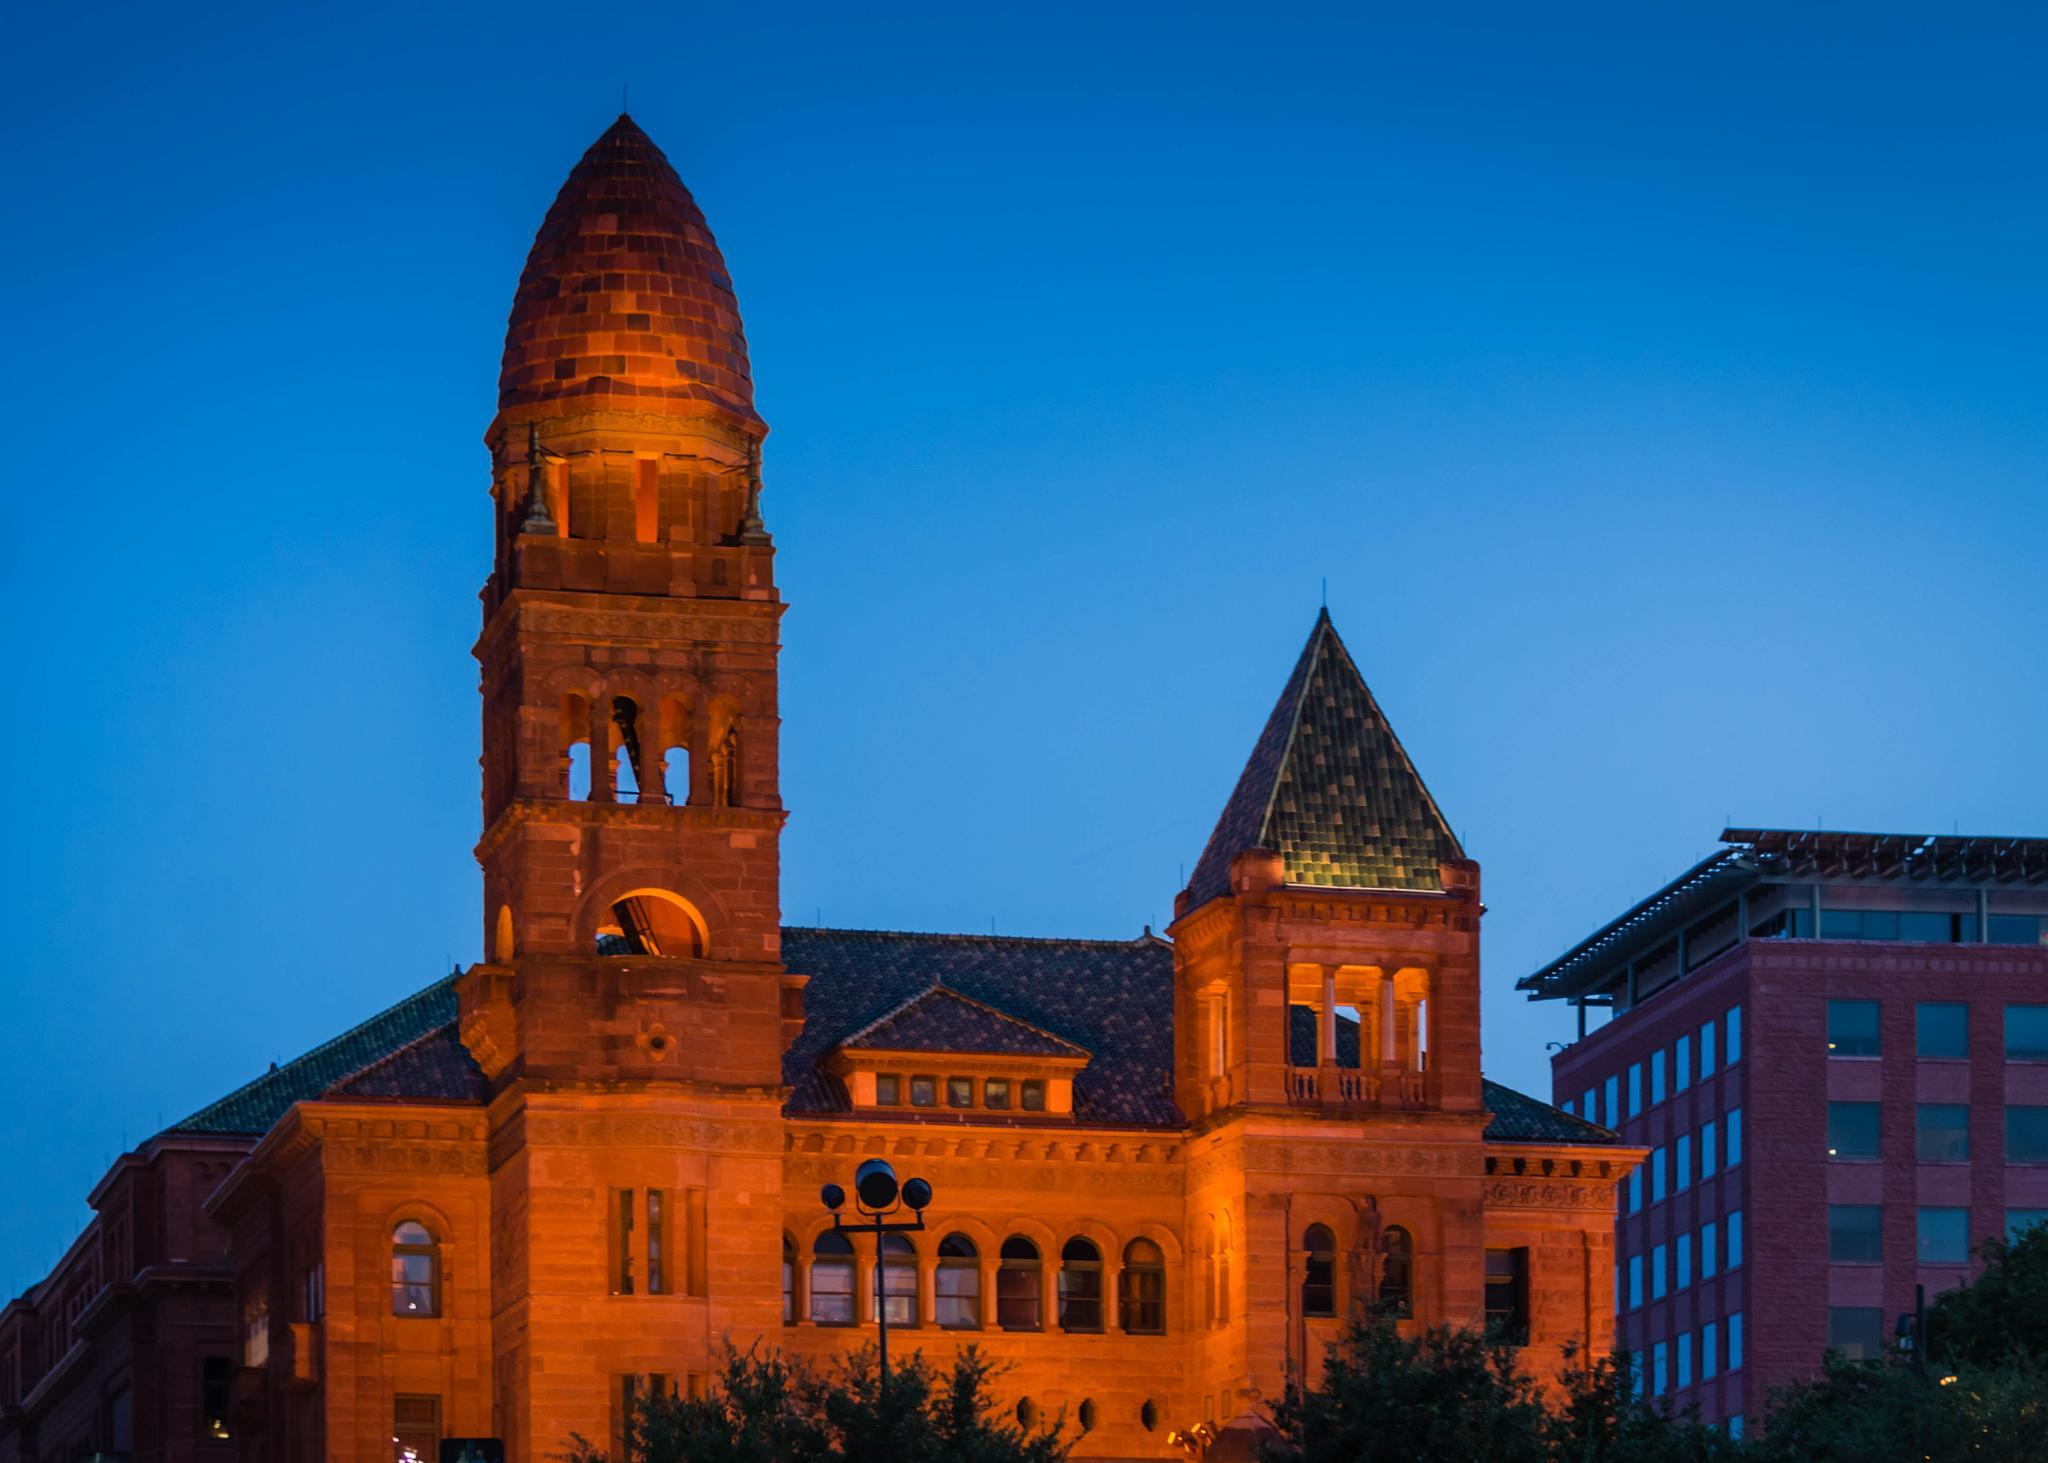 Municipal Courthouse Faces the Setting Sun by Jill Rapley